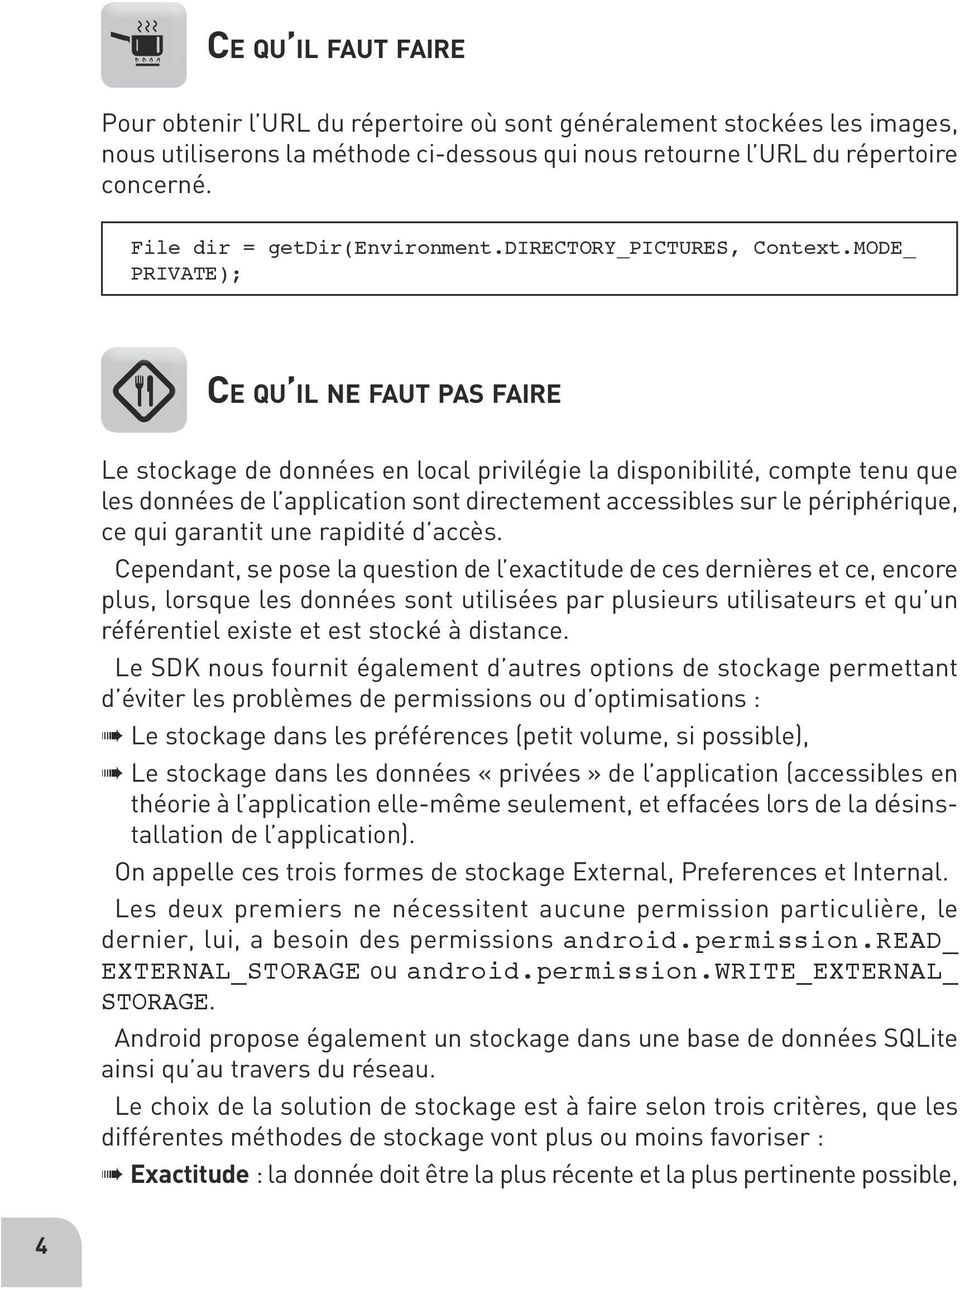 MODE_ PRIVATE); Ce qu il ne faut pas faire Le sto ckage de don nées en local pri vi lé gie la dis po ni bi lité, compte tenu que les don nées de l appli ca tion sont direc te ment acces sibles sur le